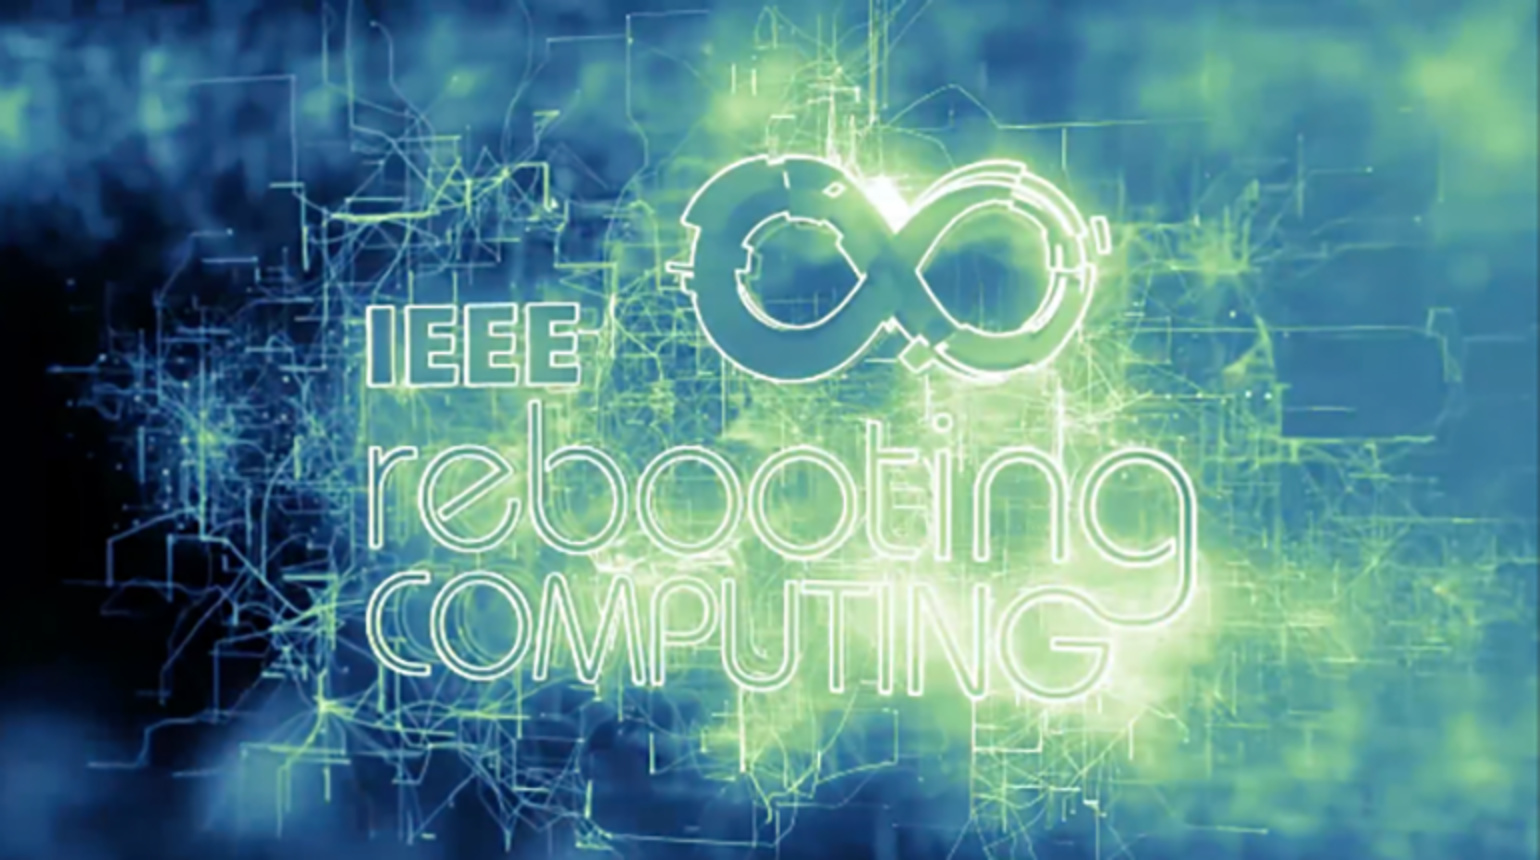 Rebooting Computing Week 2018 - IRDS, ICRC, and Industry Summit on the Future of Computing